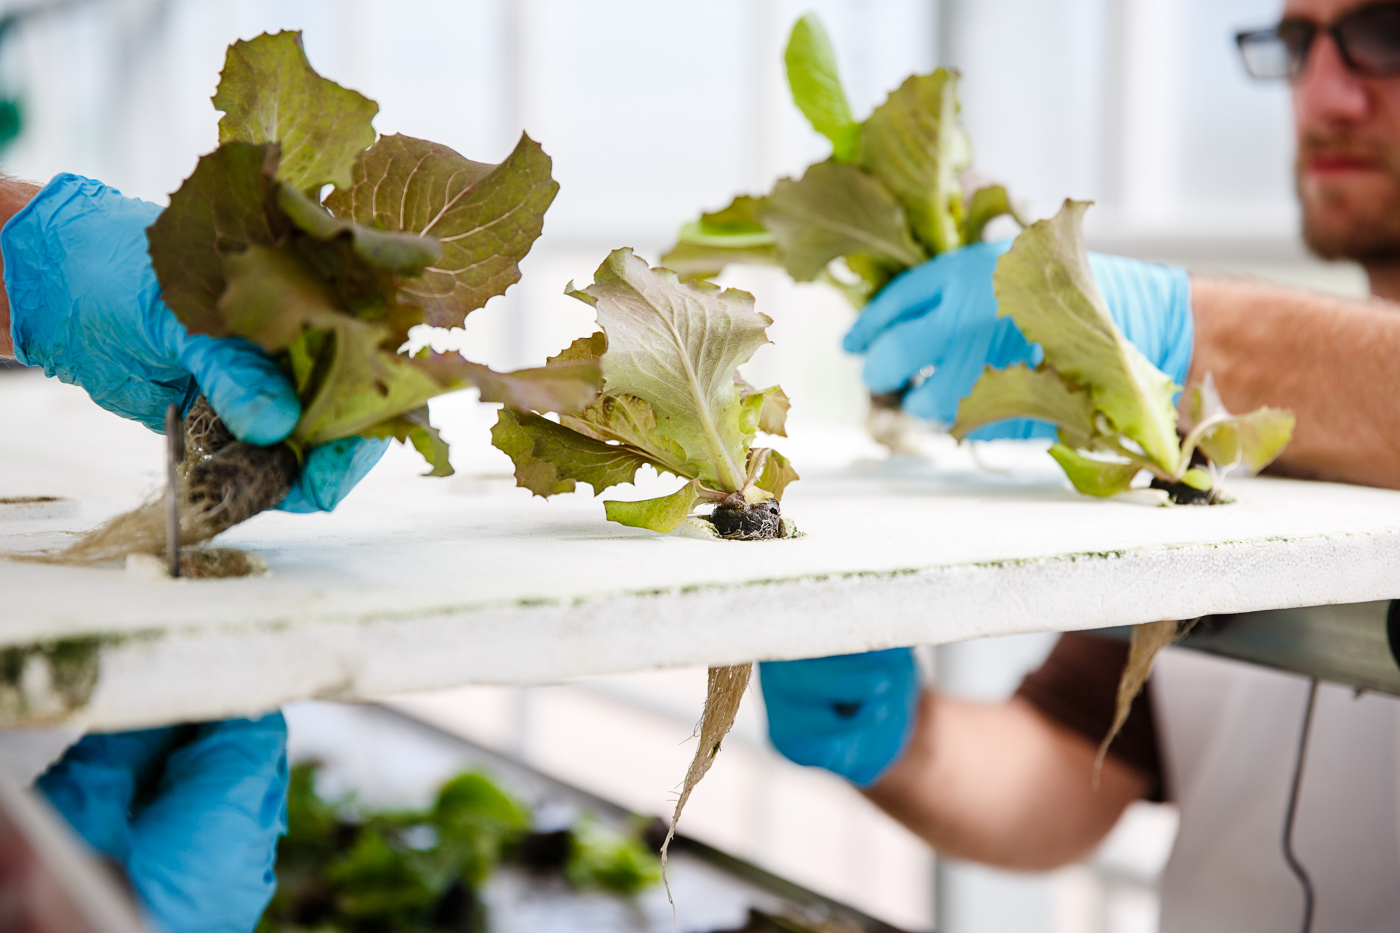 Hydroponic greens grow in a giant greenhouse at Superior Fresh based in Hixton, WI.